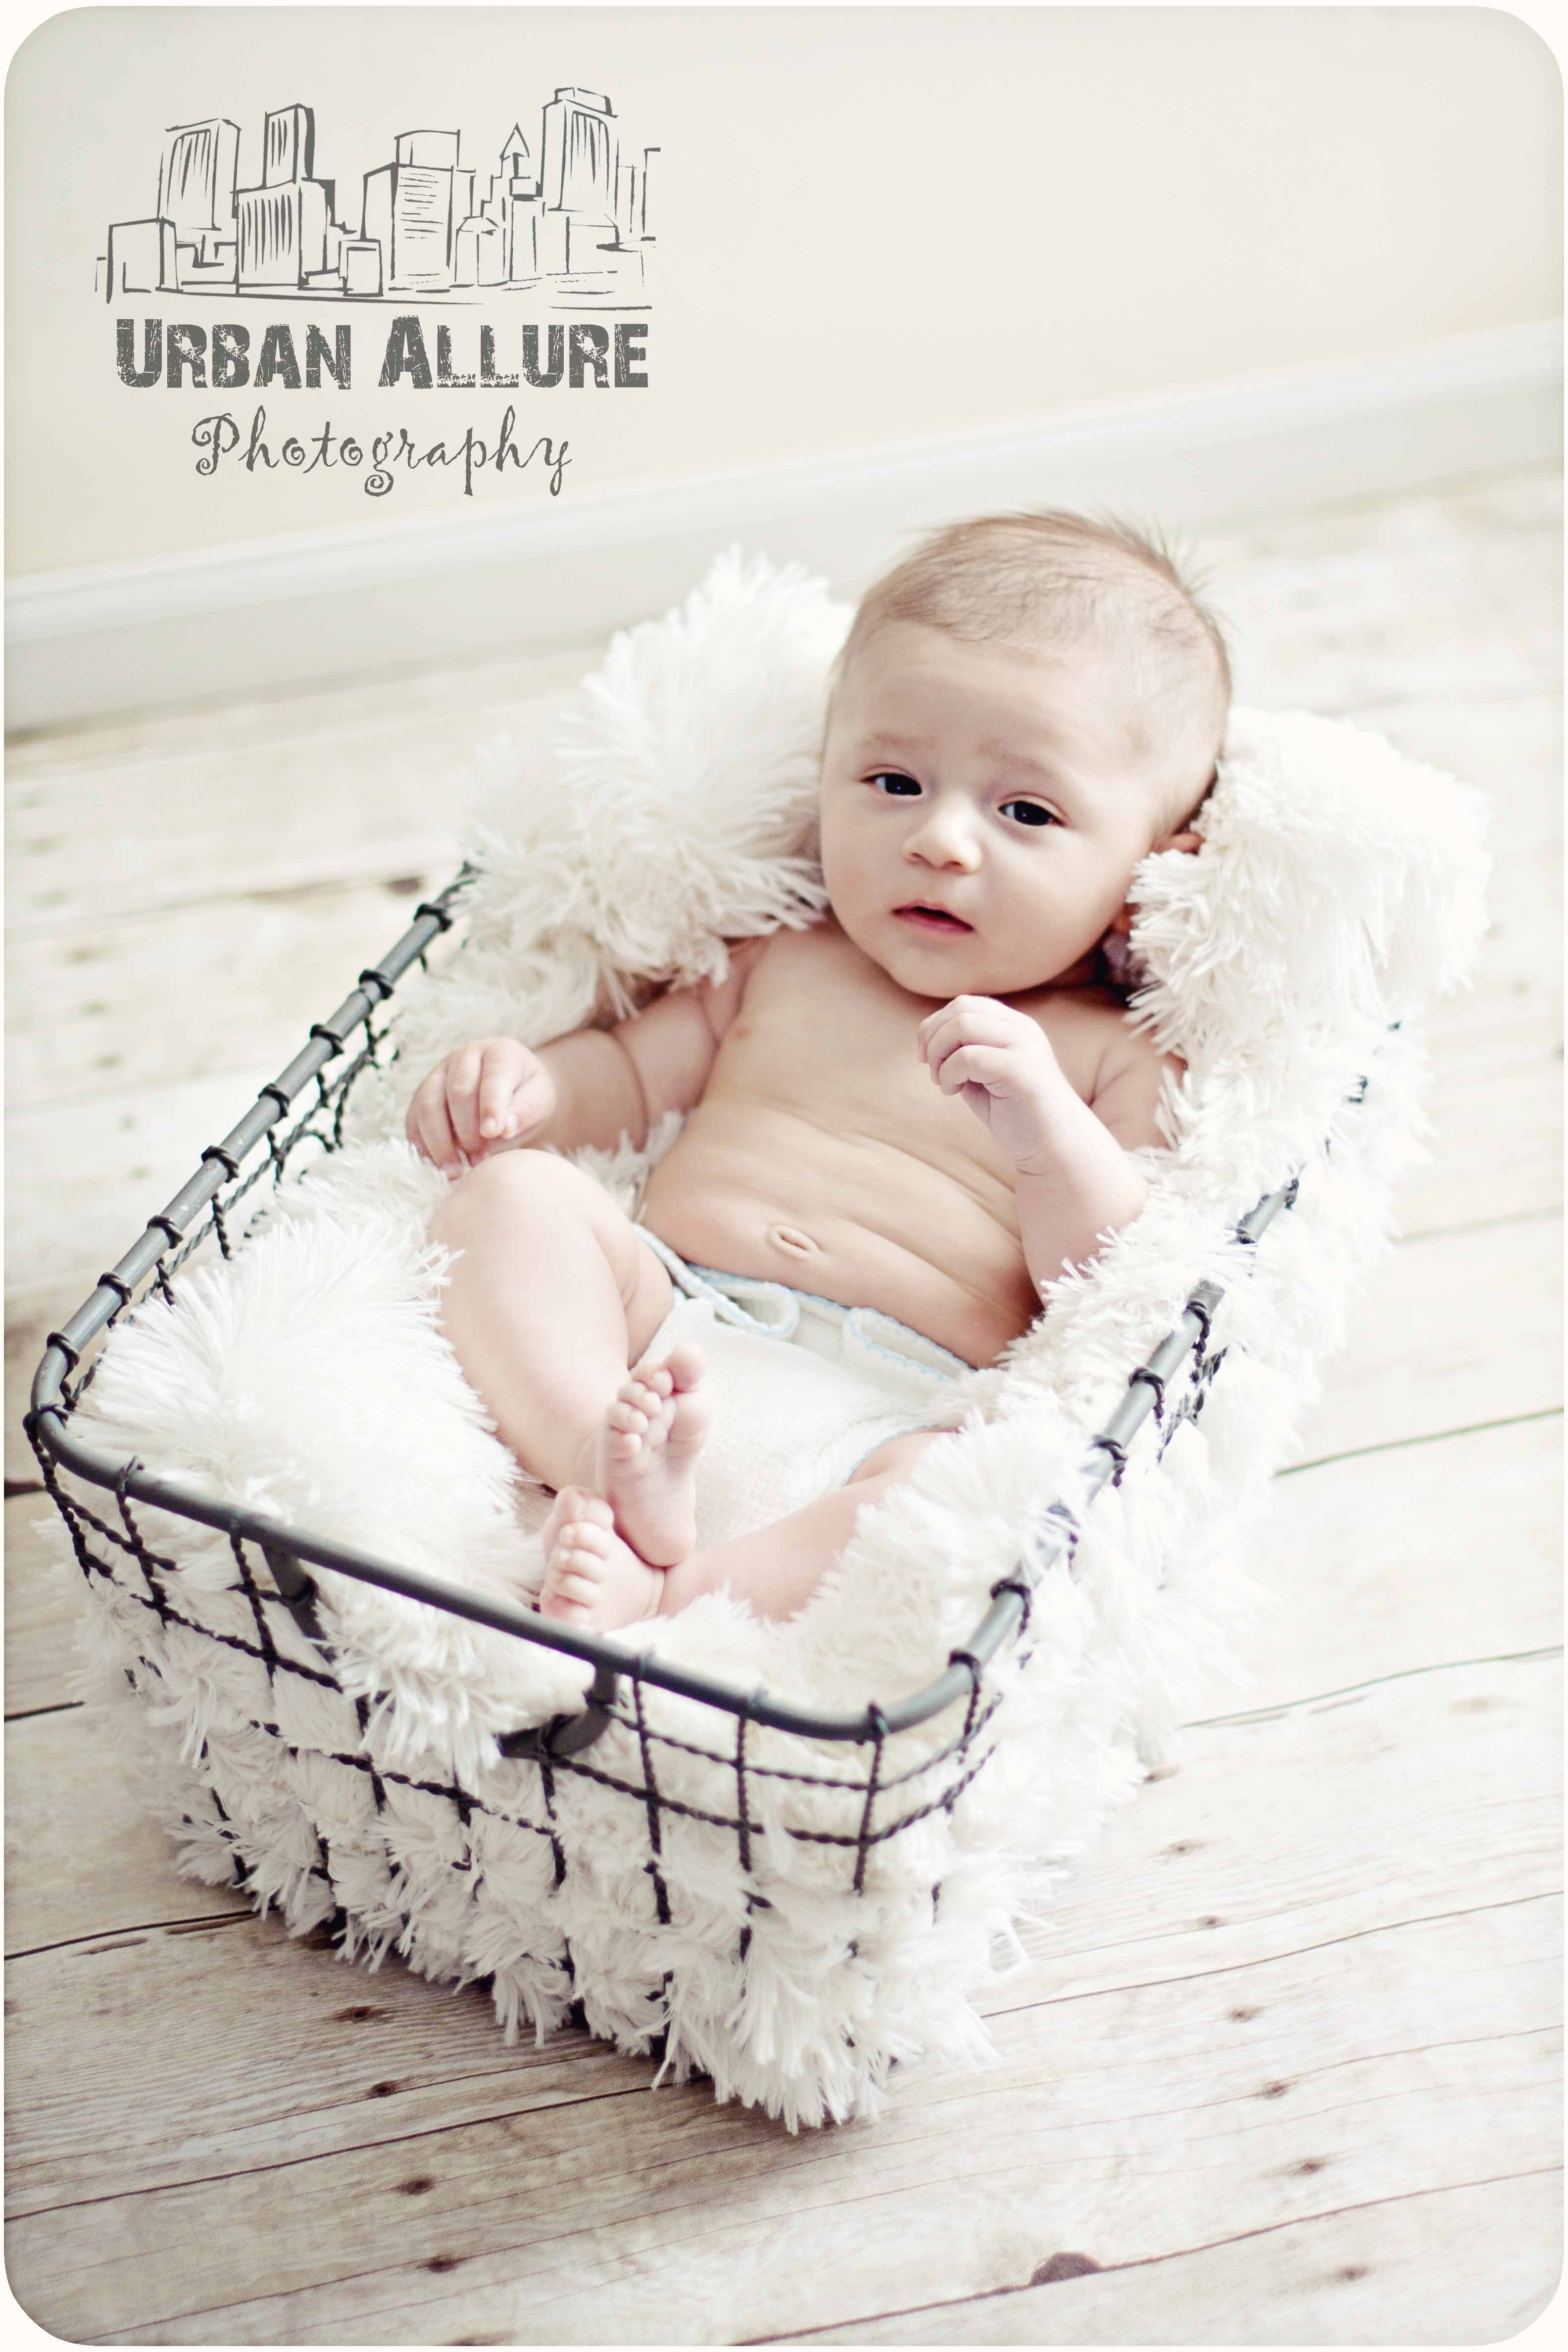 10 Attractive 4 Month Old Baby Picture Ideas for judsons three month pictures perhaps photography pinterest 7 2020